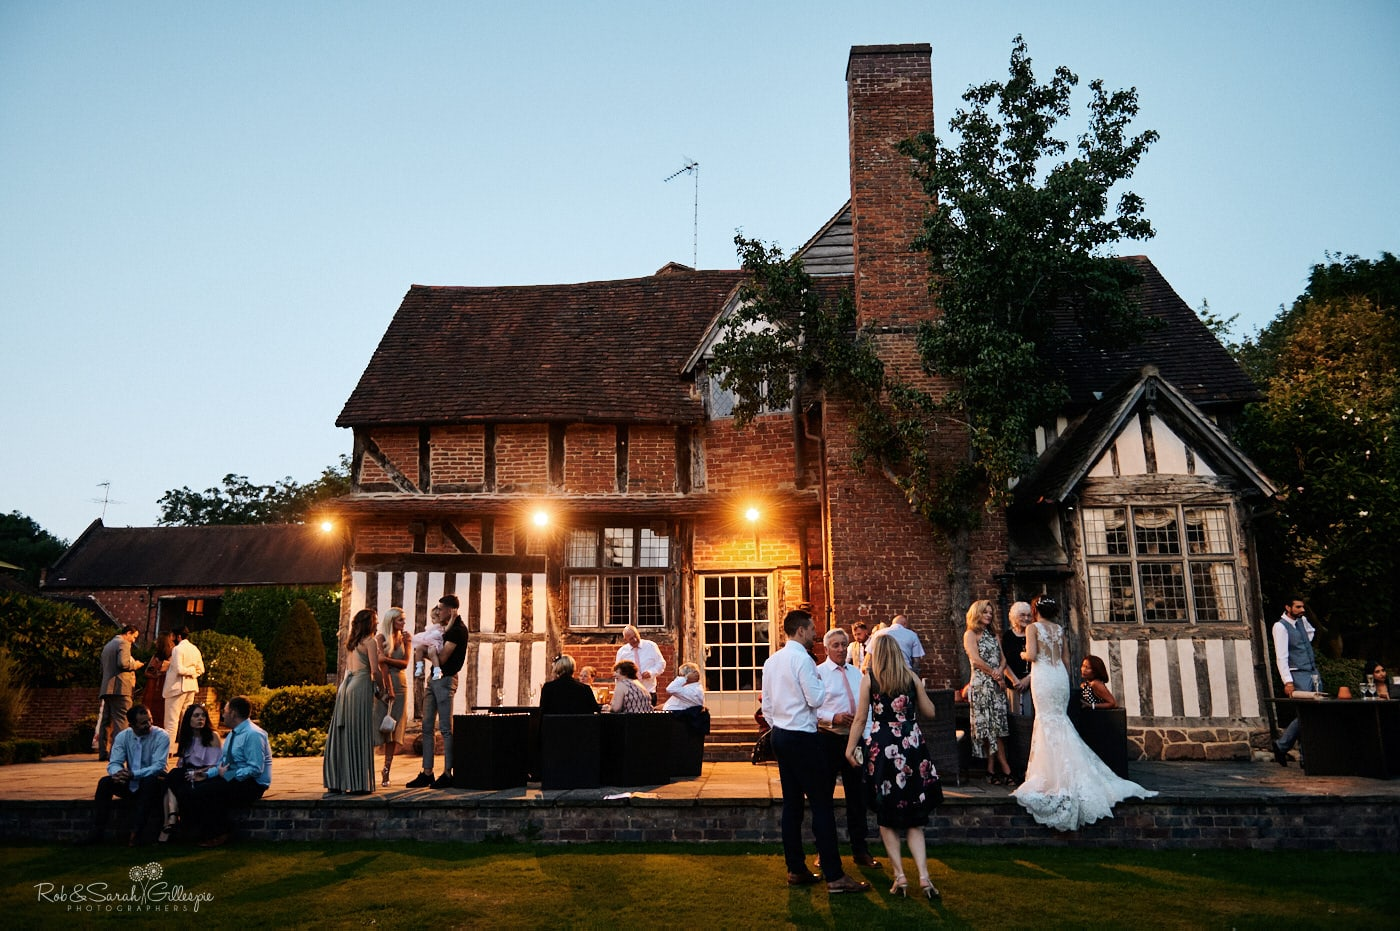 Exterior of Gorcott Hall during summer evening with wedding guests chatting and relaxing